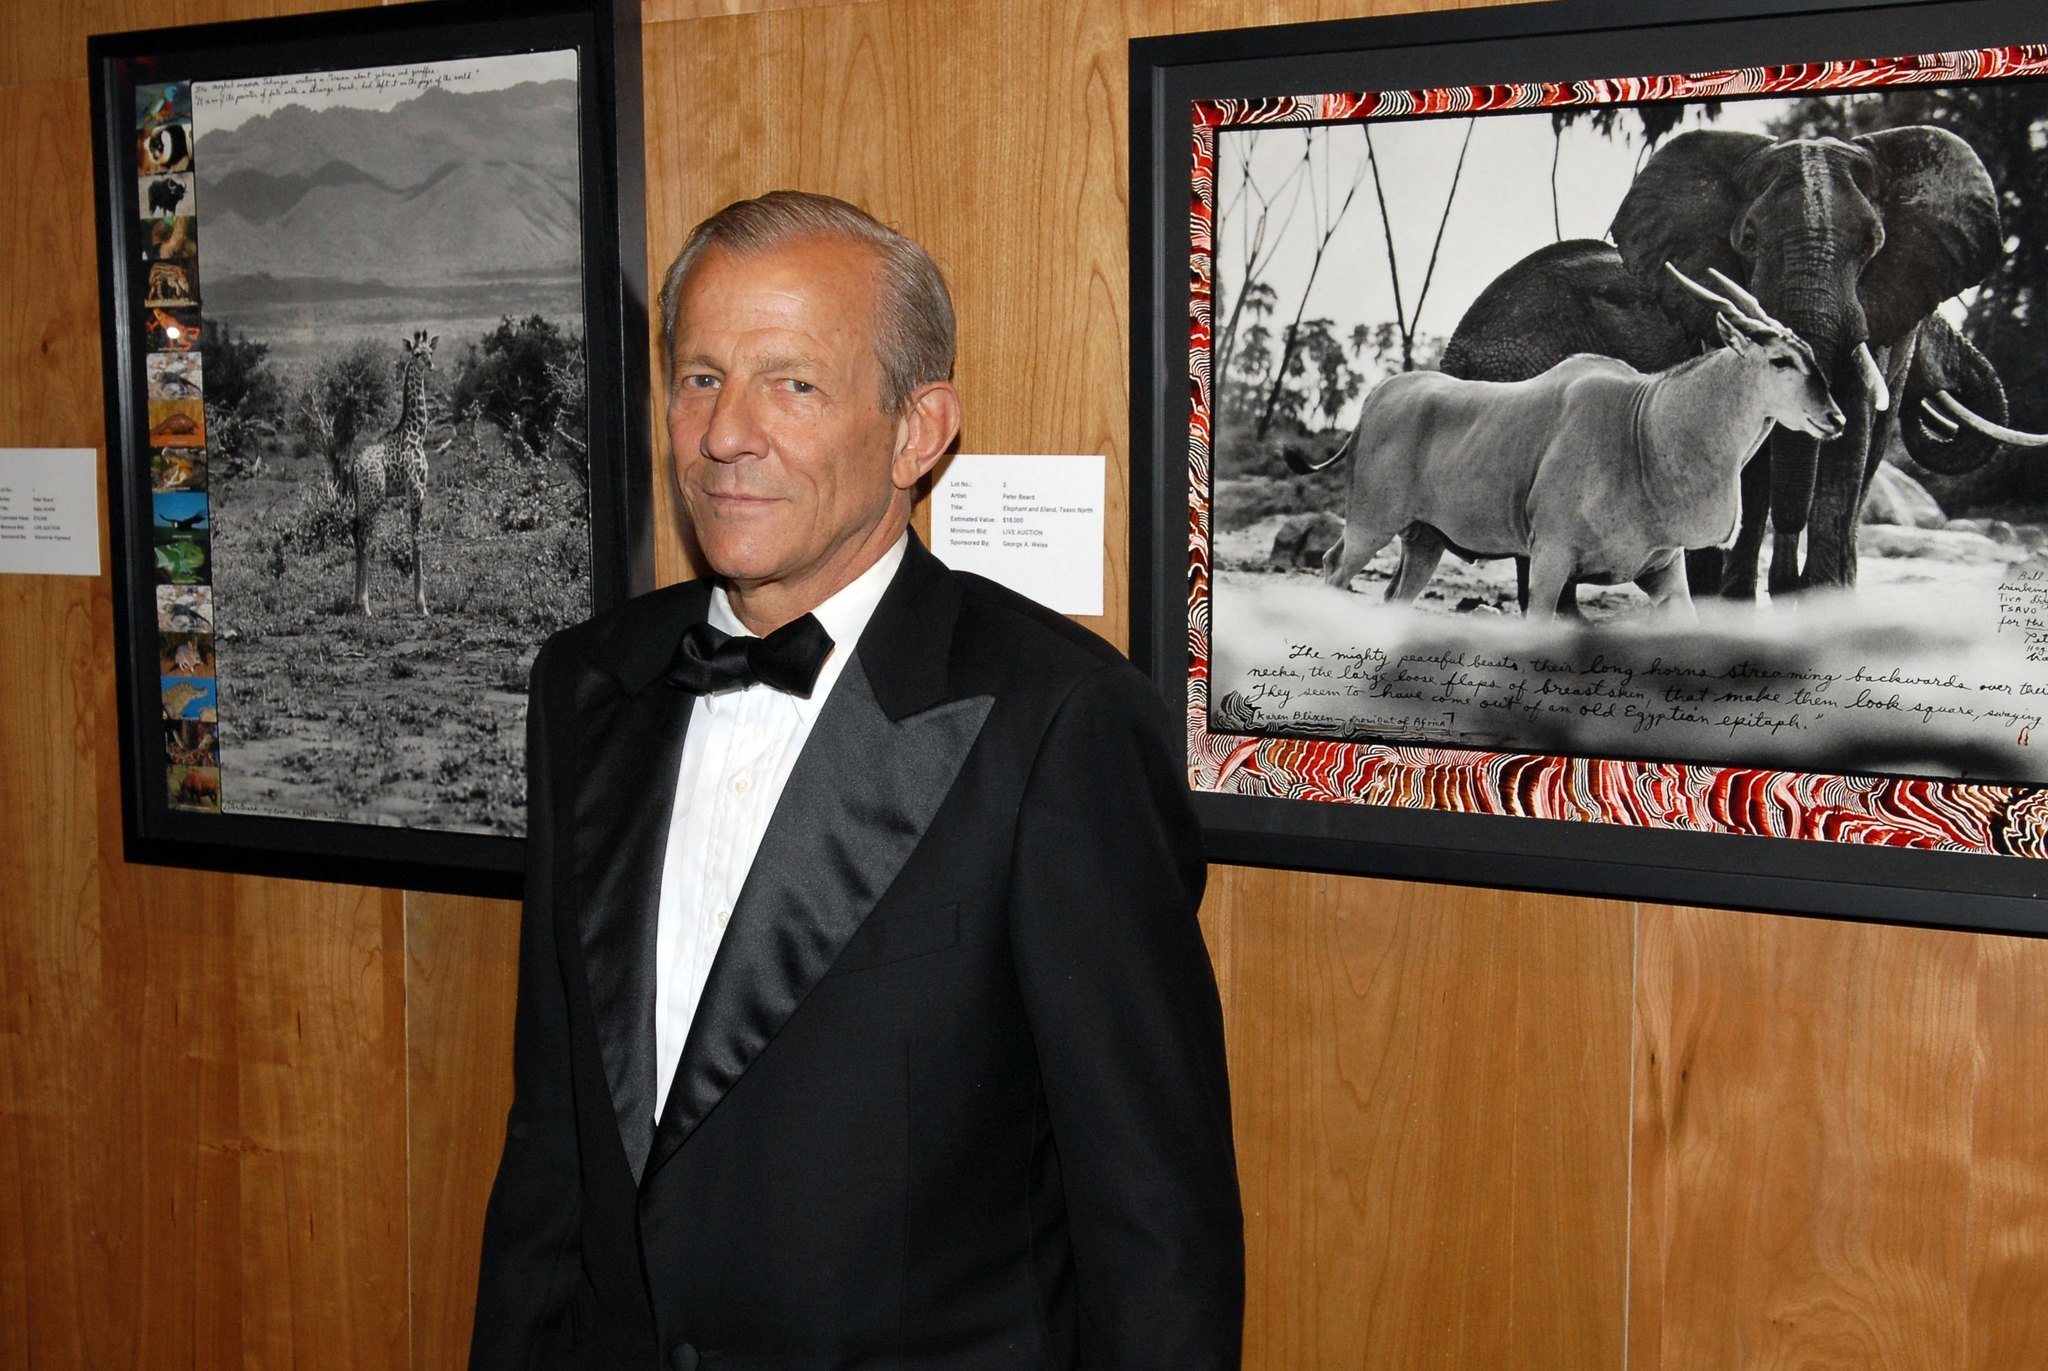 Noted photographer Peter Beard has gone missing near Montauk